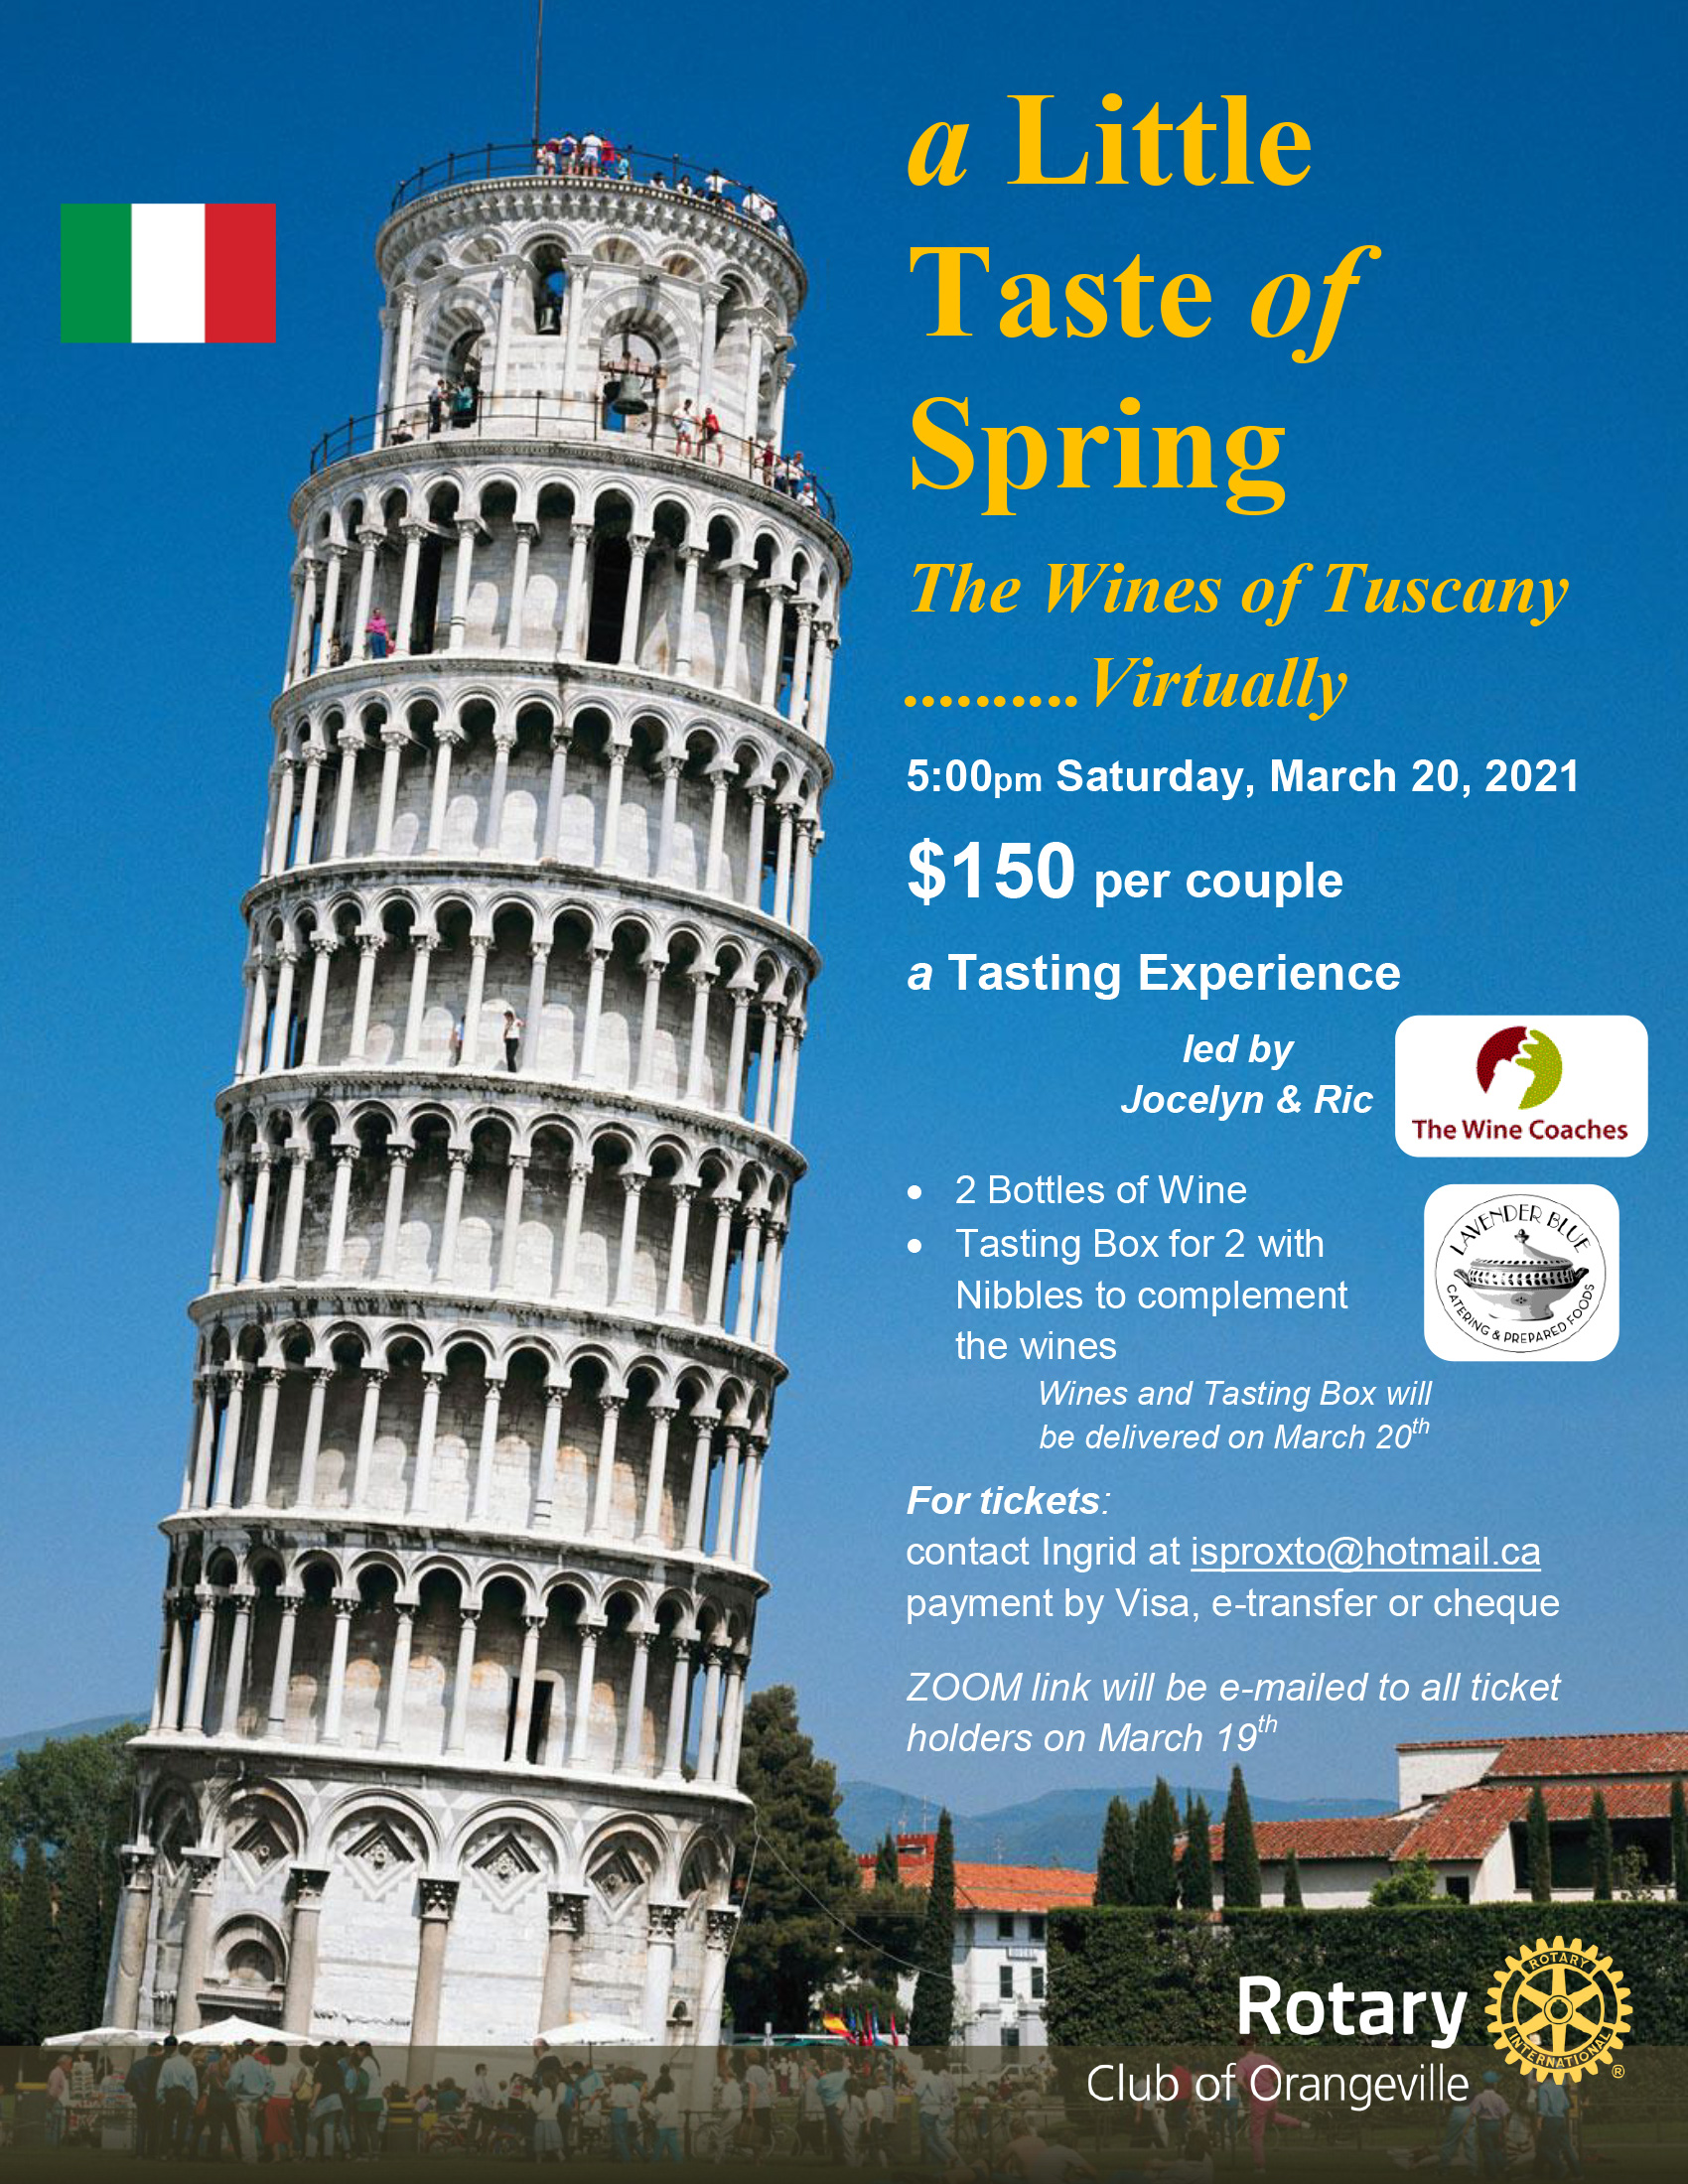 Poster, Tower of Piazza, promoting the Little Taste of Spring Wine Tasting Experience.